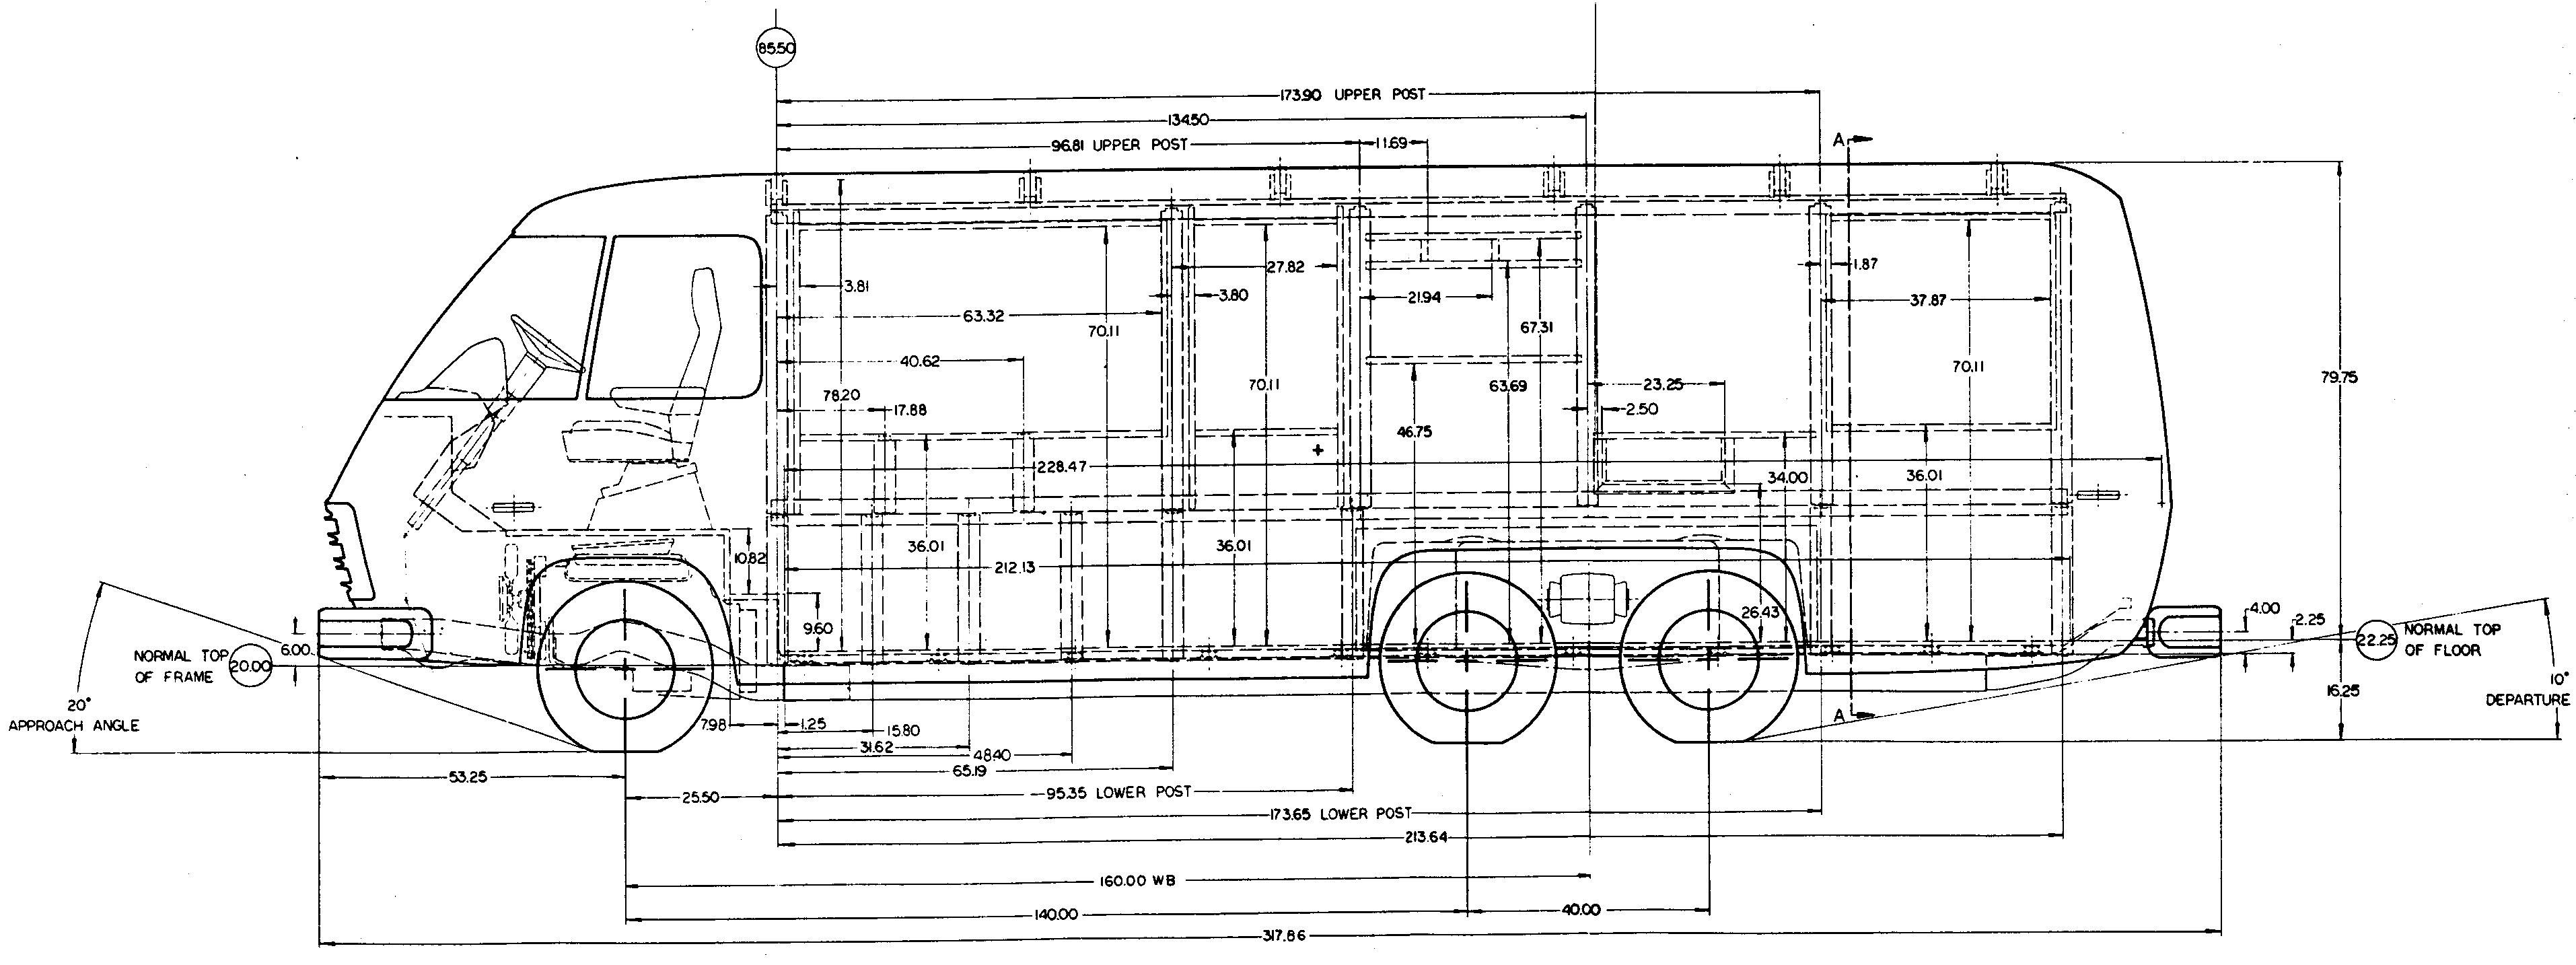 GMC Motorhome blueprint | RV | Pinterest | Gmc motorhome, Rv and Gmc on model home designs, paint home designs, wood home designs, vacation home designs, pole home designs, trailer home designs, manufactured home designs, iron lion home designs, mobile home designs, interior home designs, motor club designs, cylinder home designs, frame home designs, travel designs, sea scape home designs, automotive designs, construction home designs, new motorhome designs, kit home designs, remanufactured home designs,